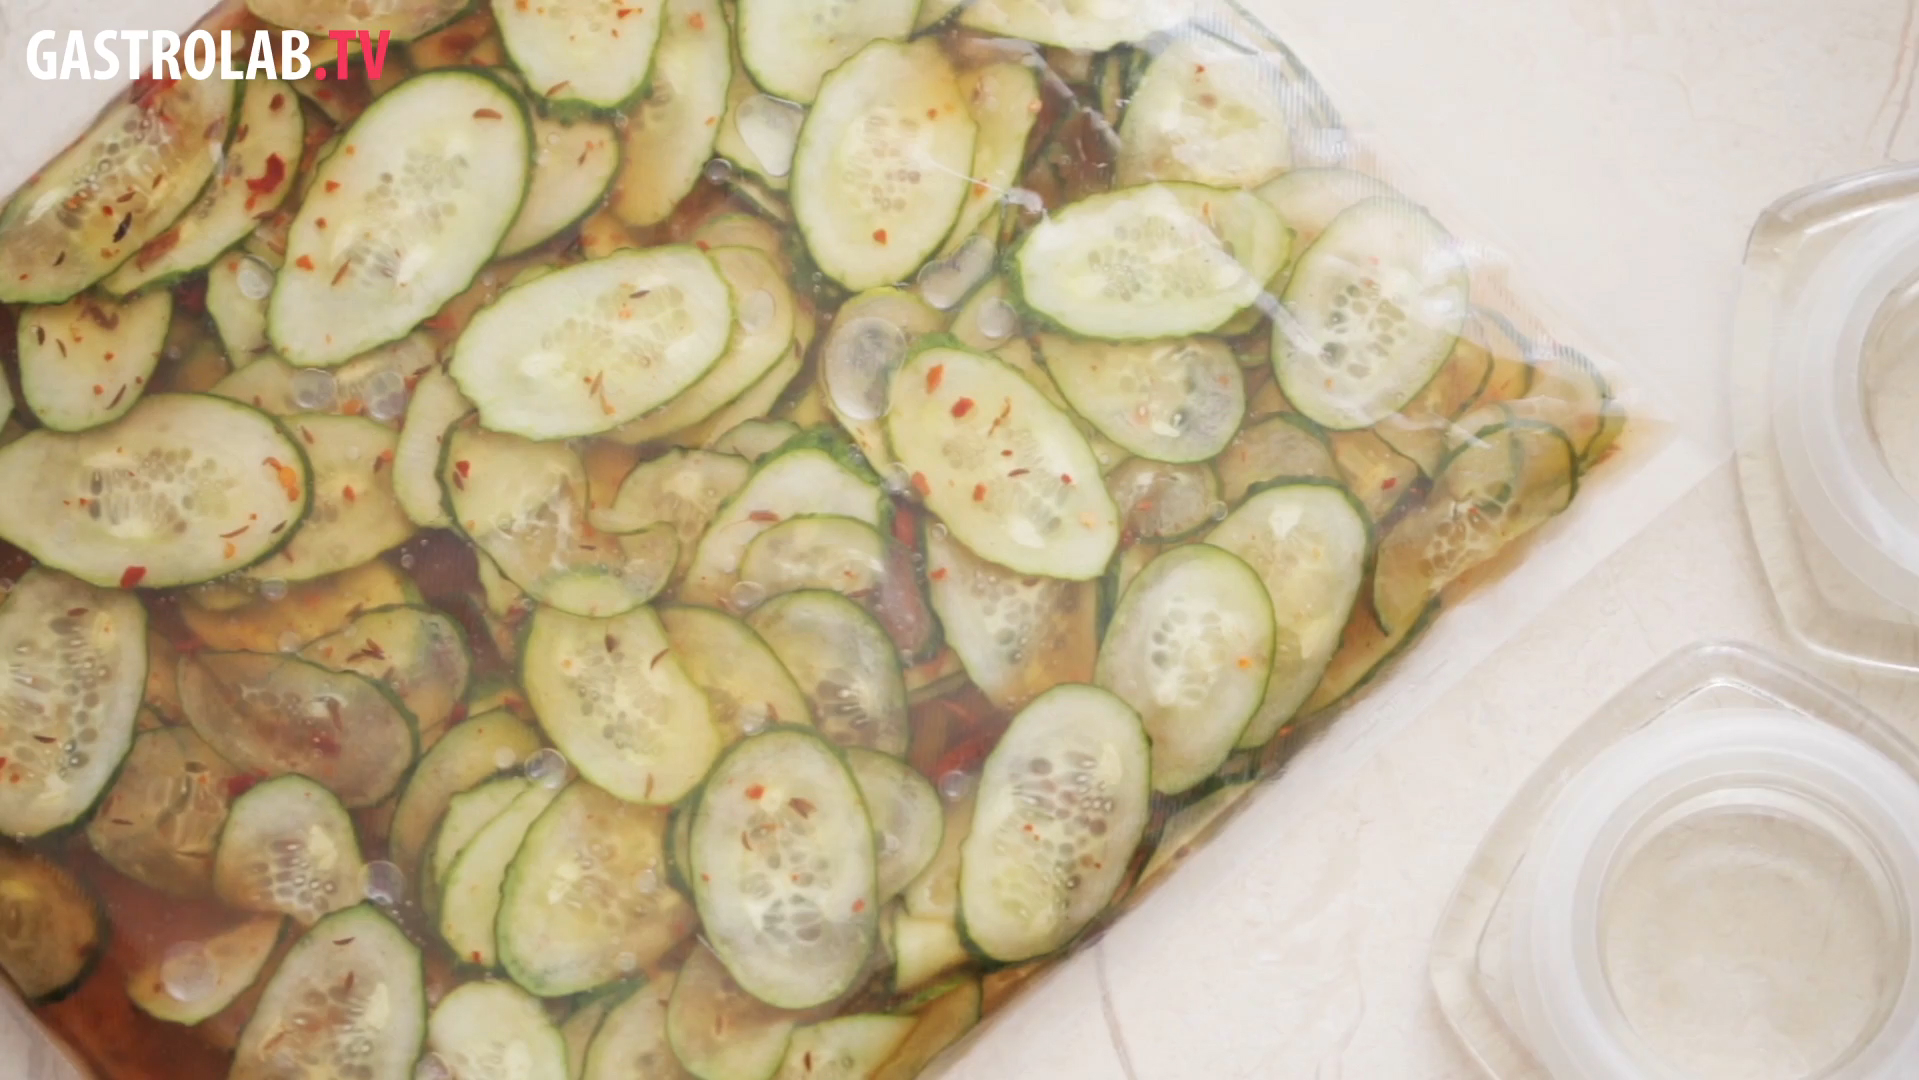 How to Make Quick Pickled Cucumbers